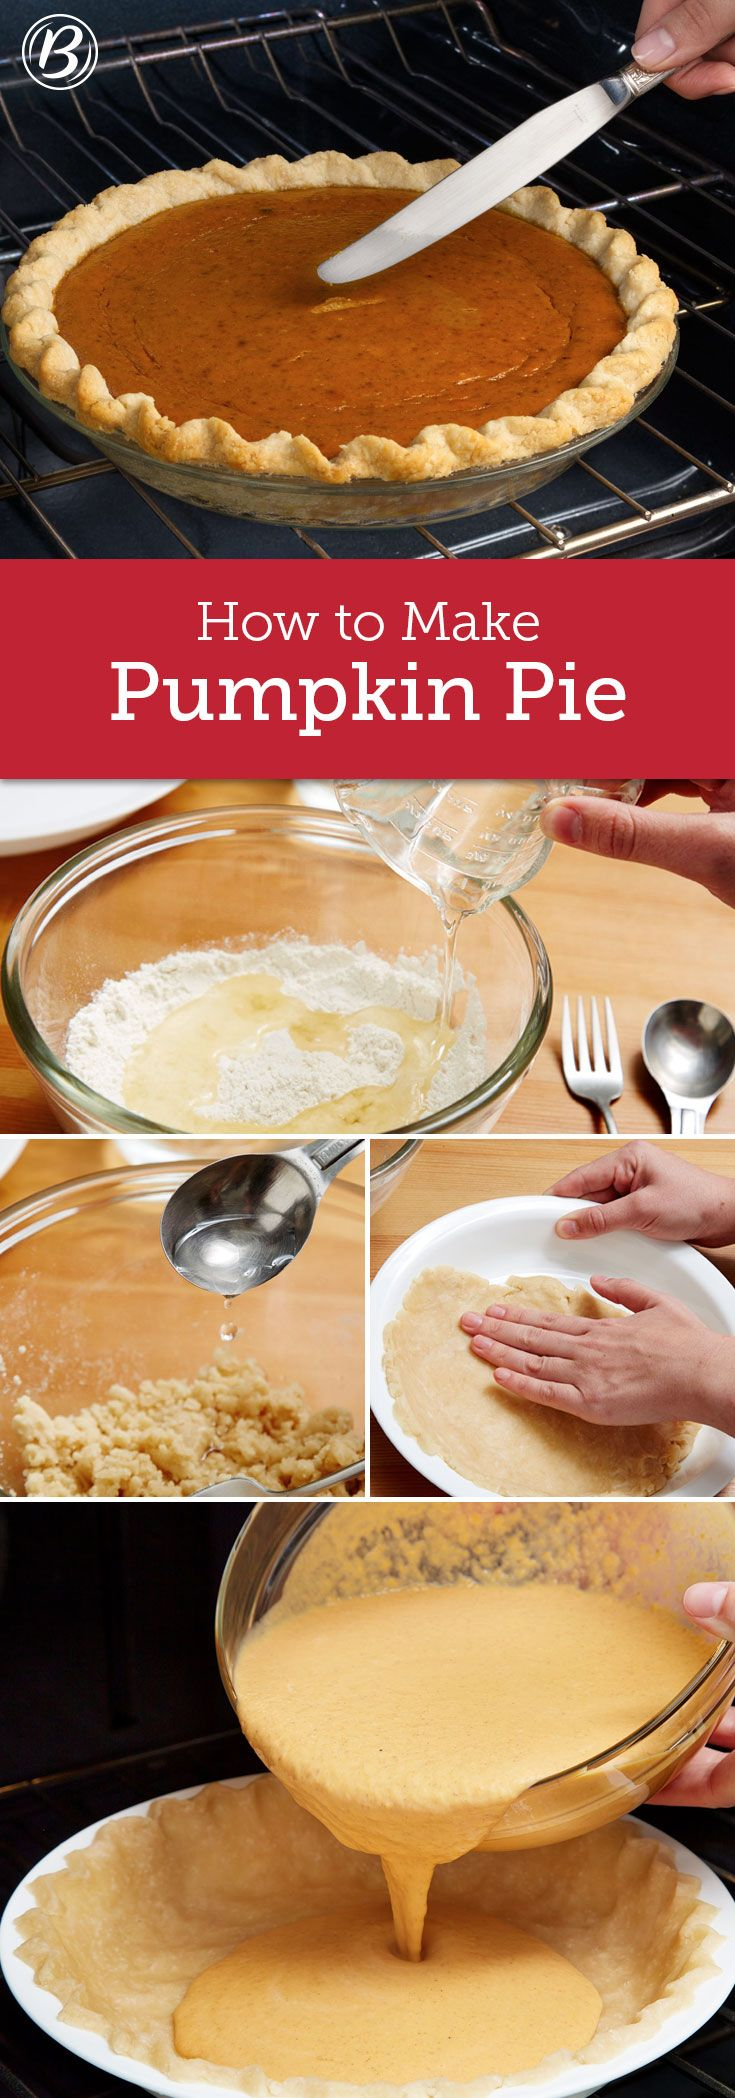 Your Thanksgiving guests will be grateful you put time into making this classic (and surprisingly easy!) pumpkin pie. Our fail-safe recipe and step-by-step photos make it extra-easy to nail, even on your first try!